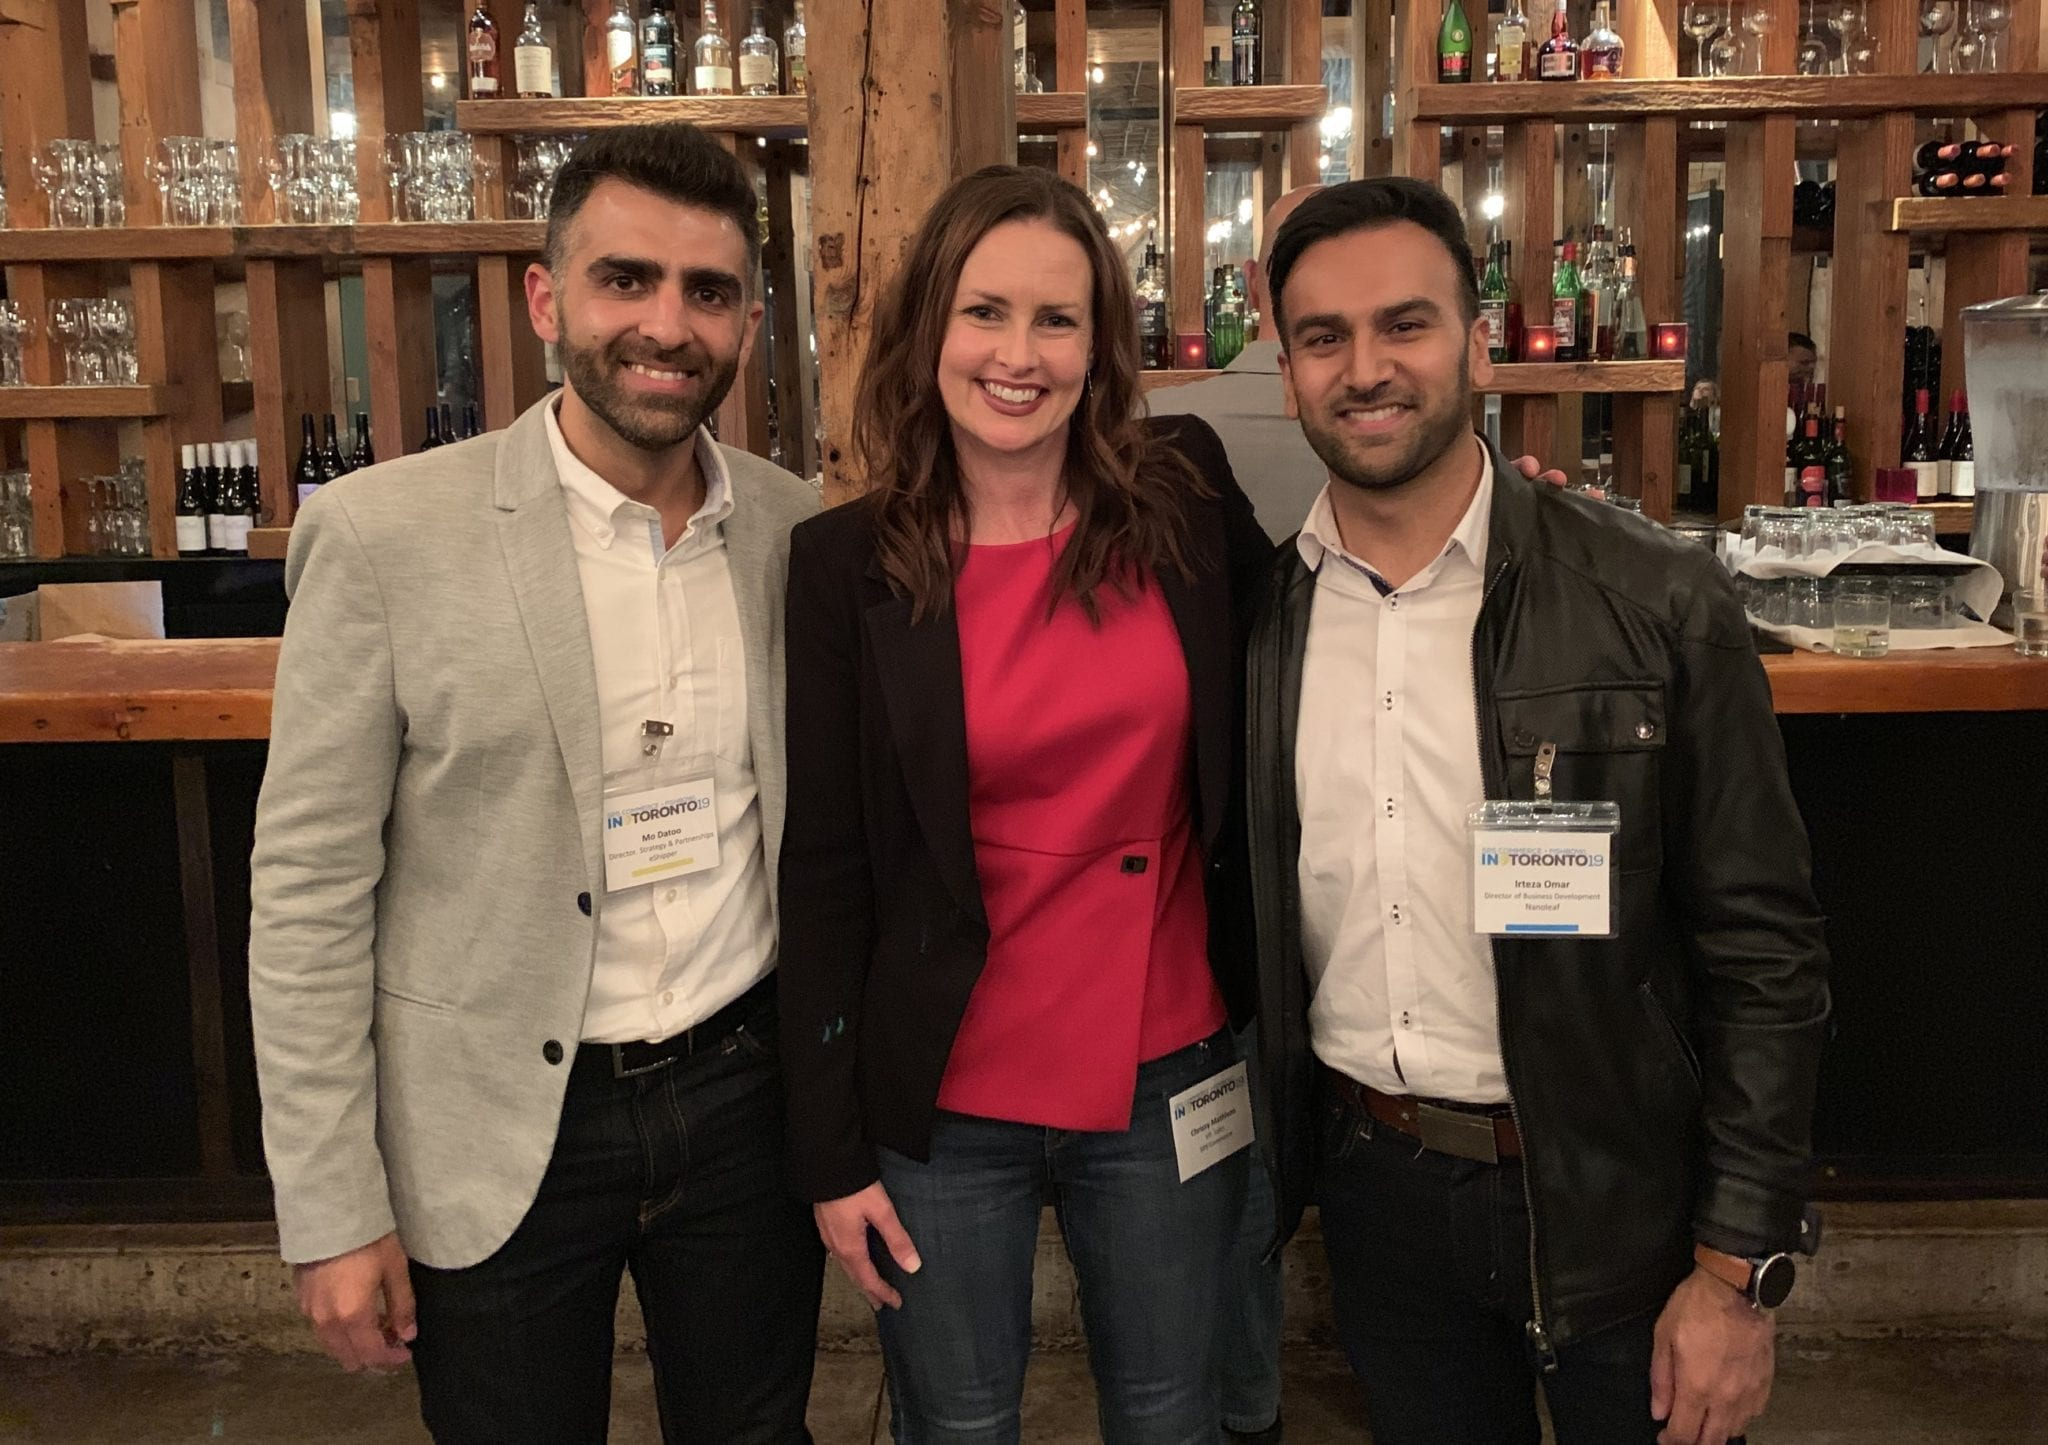 The highlight of the event was a panel led by Chrissy Mathison, Vice President of Sales at SPS, and included speakers, Irteza Omar, Director of Business Development at Nanoleaf, and Mo Datoo, Director, Strategy and Partnerships at eShipper.